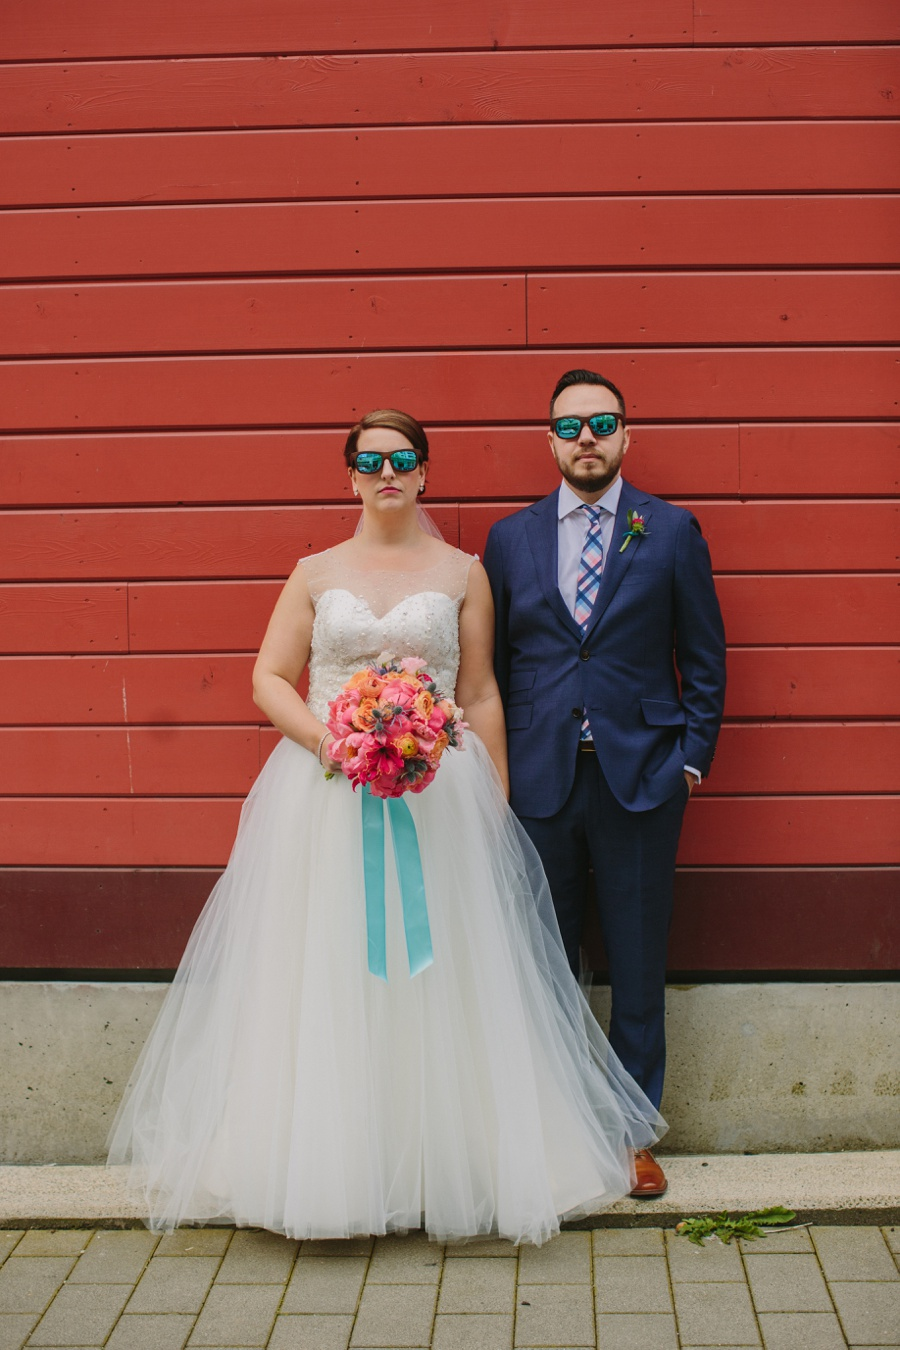 Vancouver Bride and Groom with Sunglasses